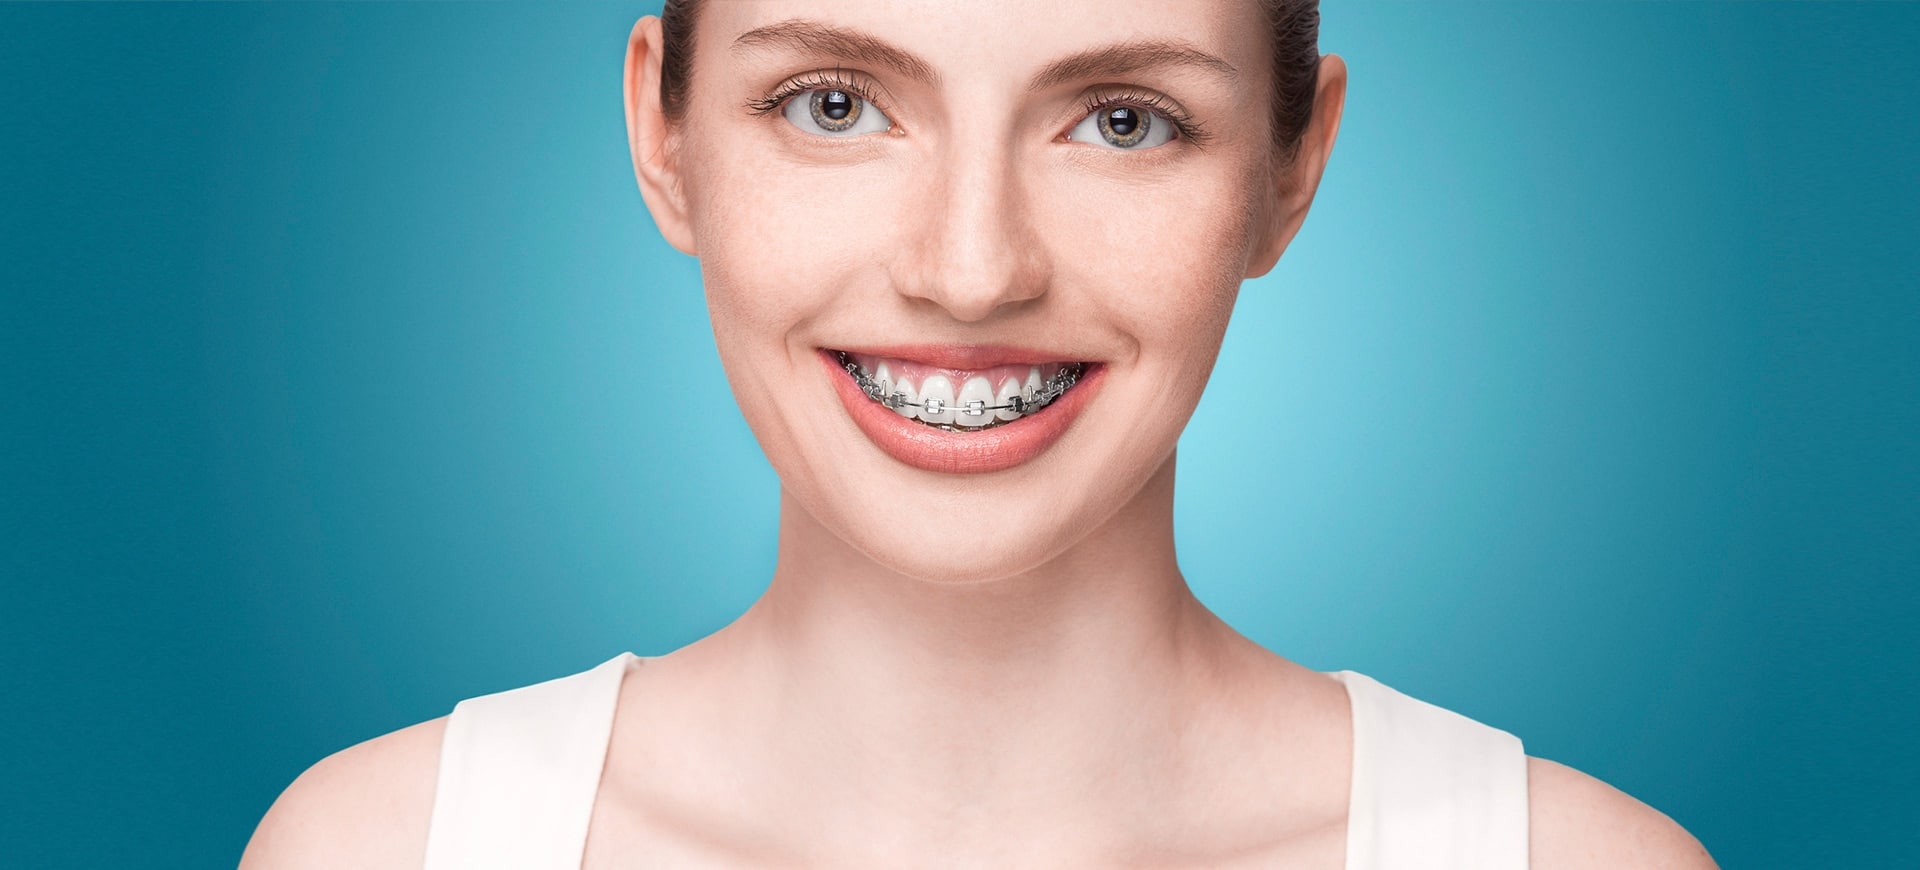 Orthodontics And Cost – What You're Actually Paying For